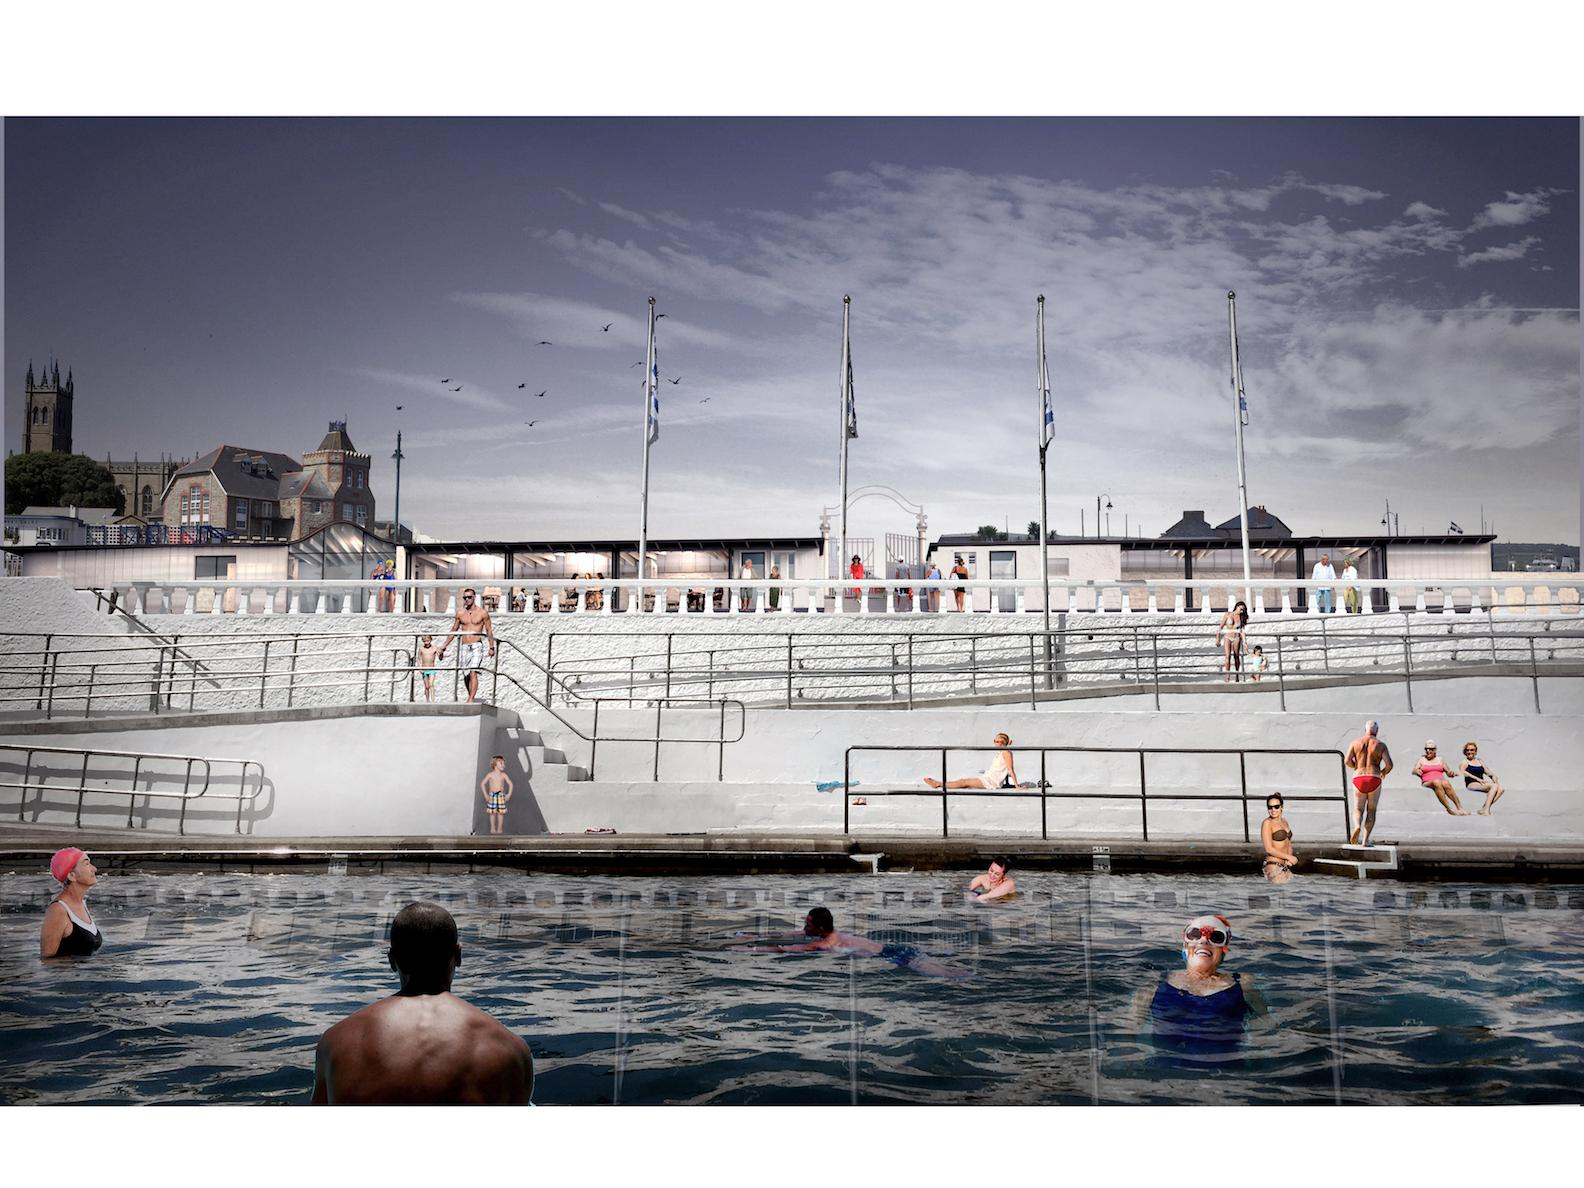 ScottWhitbyStudio (SWS) was asked to prepare proposals for safeguarding the future of the Grade II listed pool by providing year-round facilities for the people of Penzance